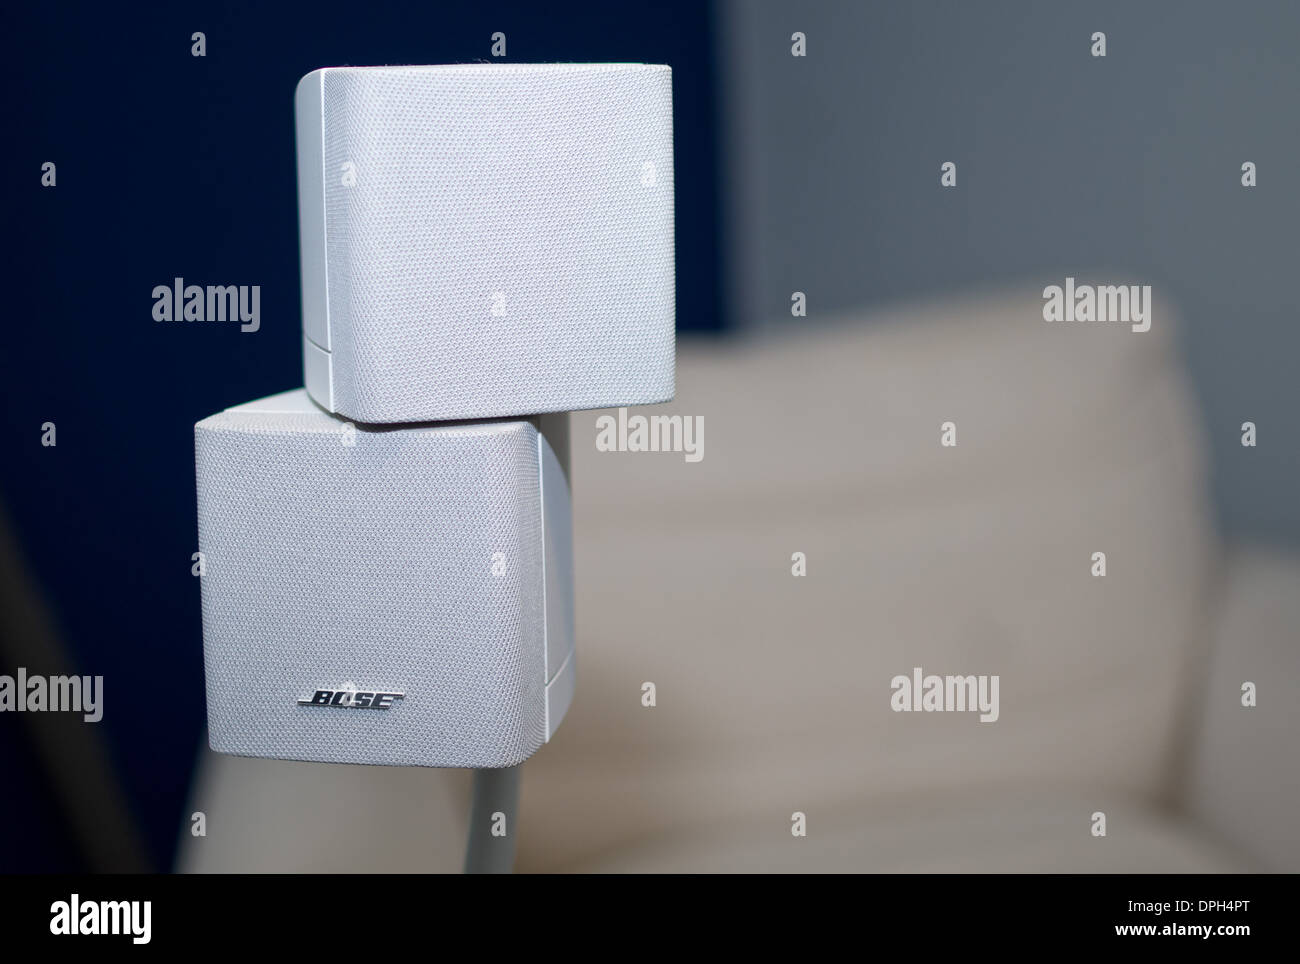 HI fi high quality sound small discrete speakers - Stock Image